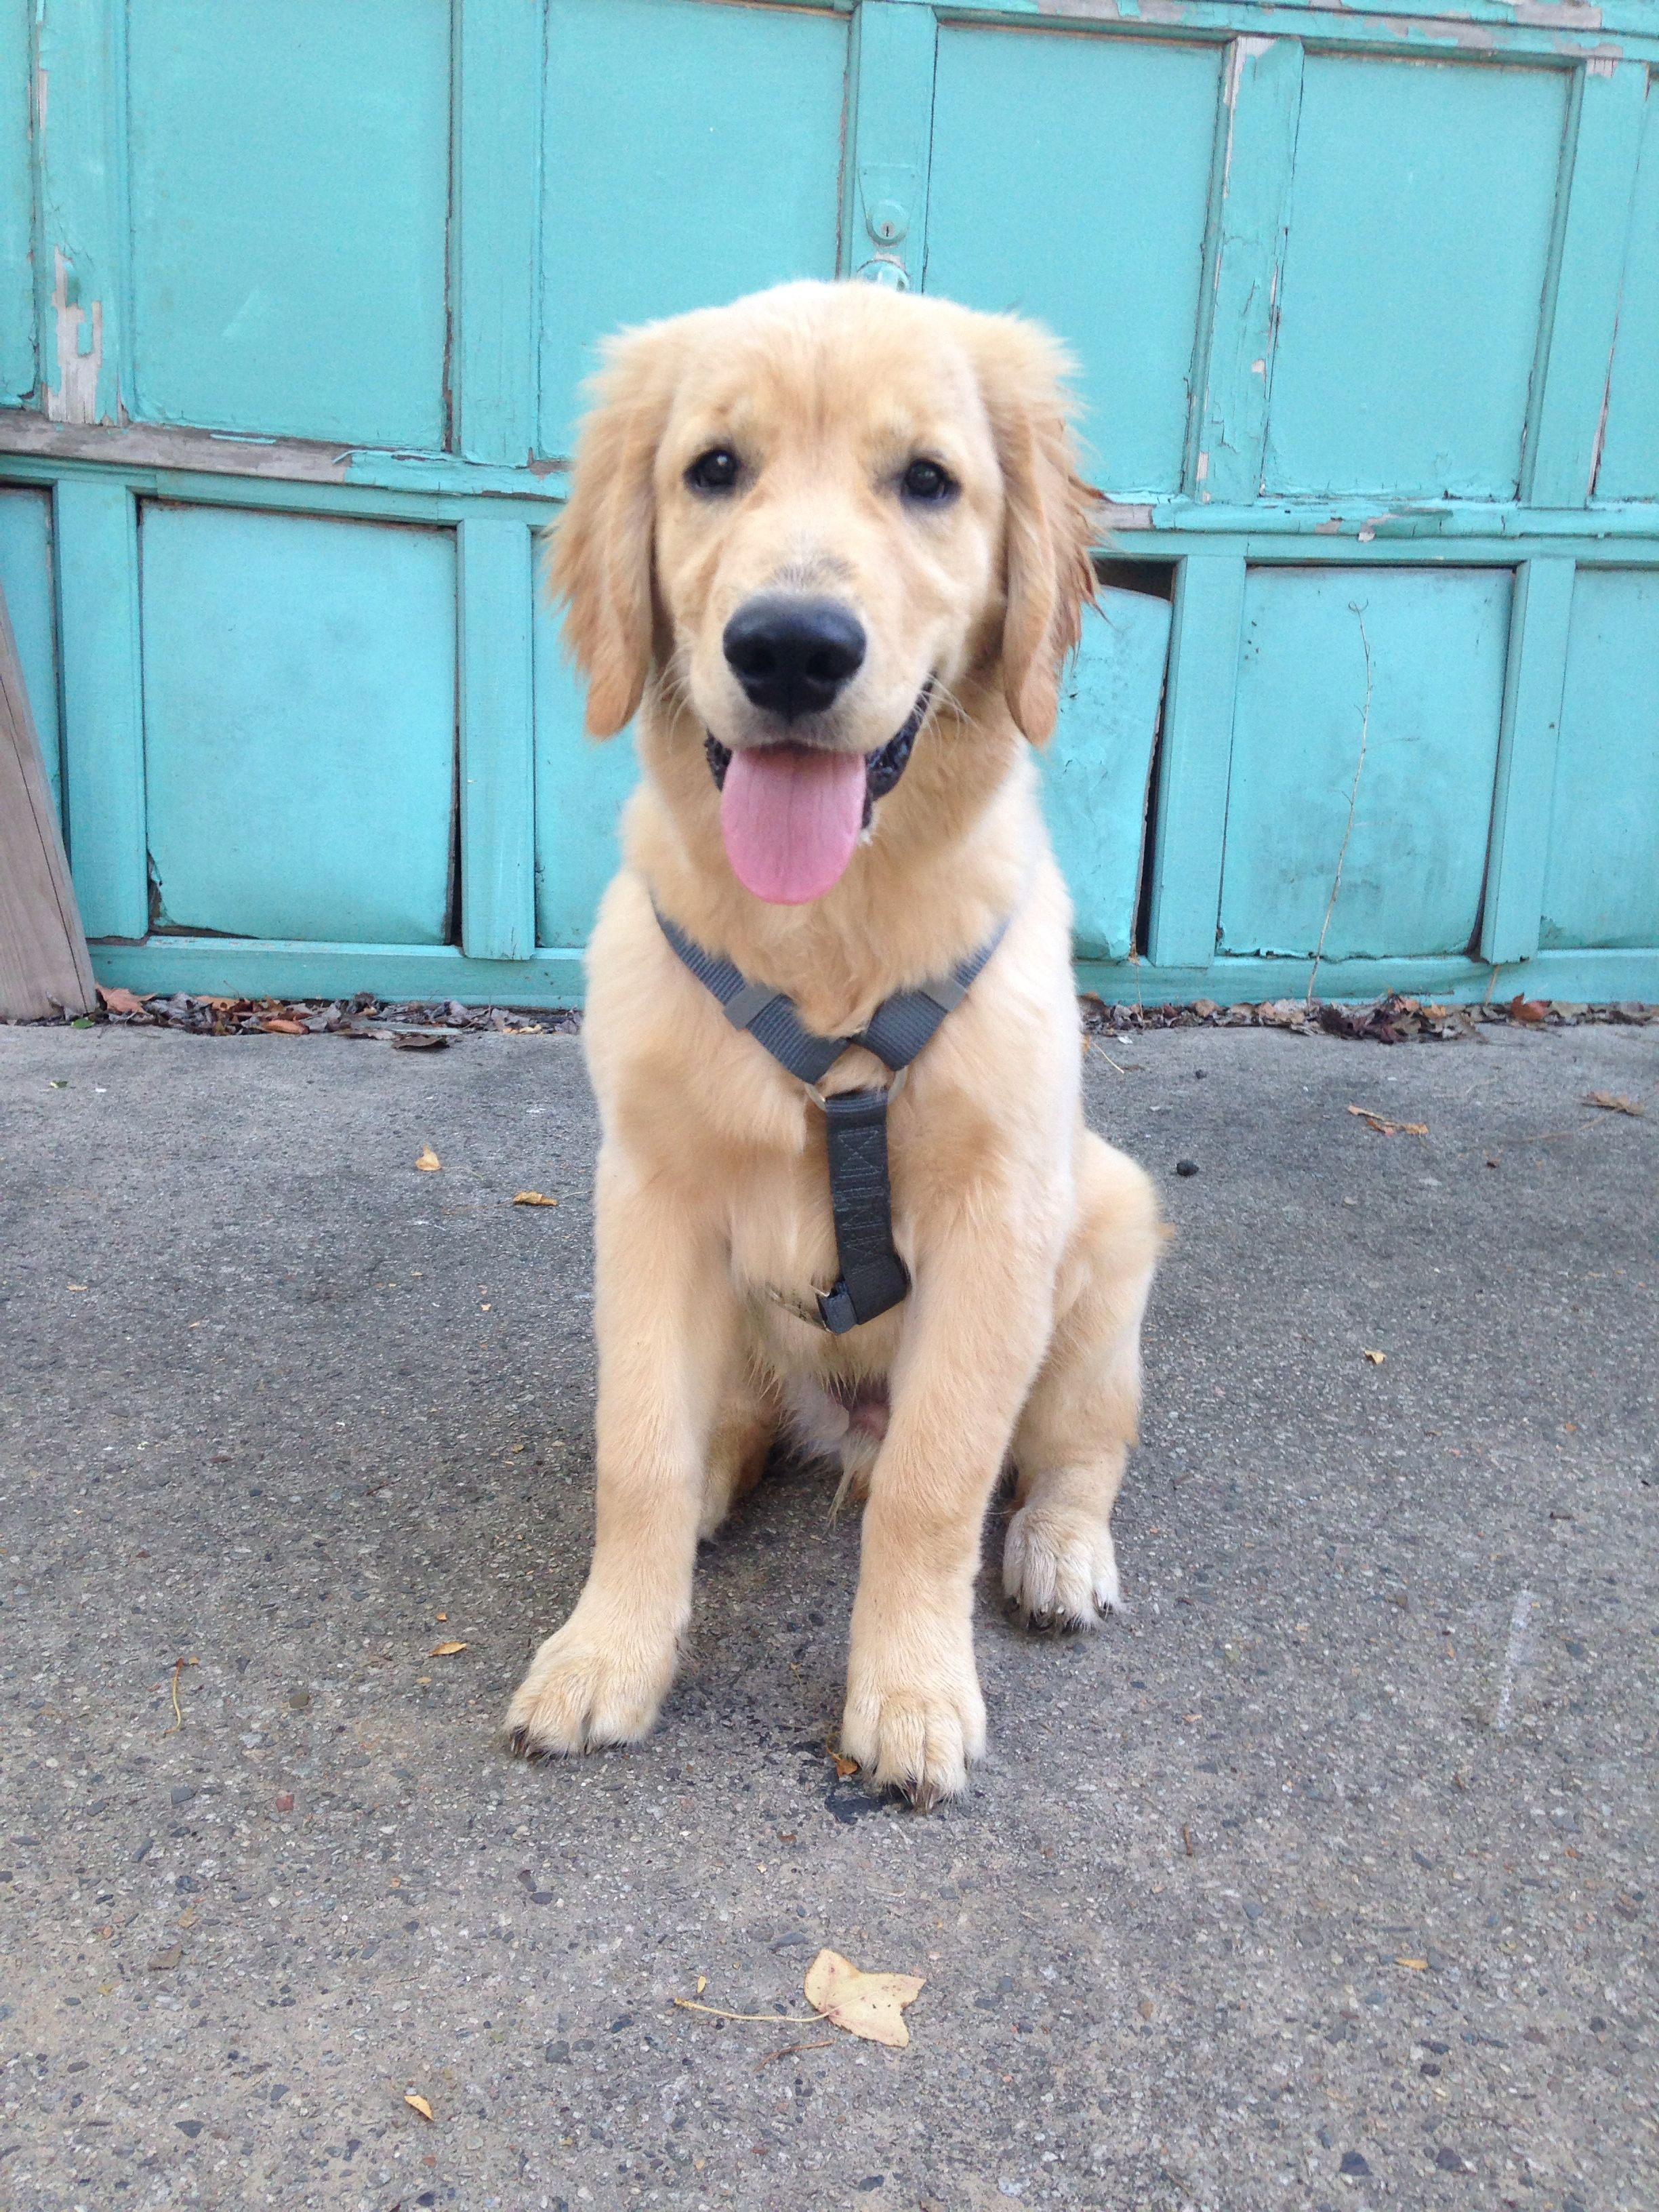 Puppy Golden Retriever 4 Months Oliver New Orleans Golden Retriever Best Dogs For Families Buy A Dog